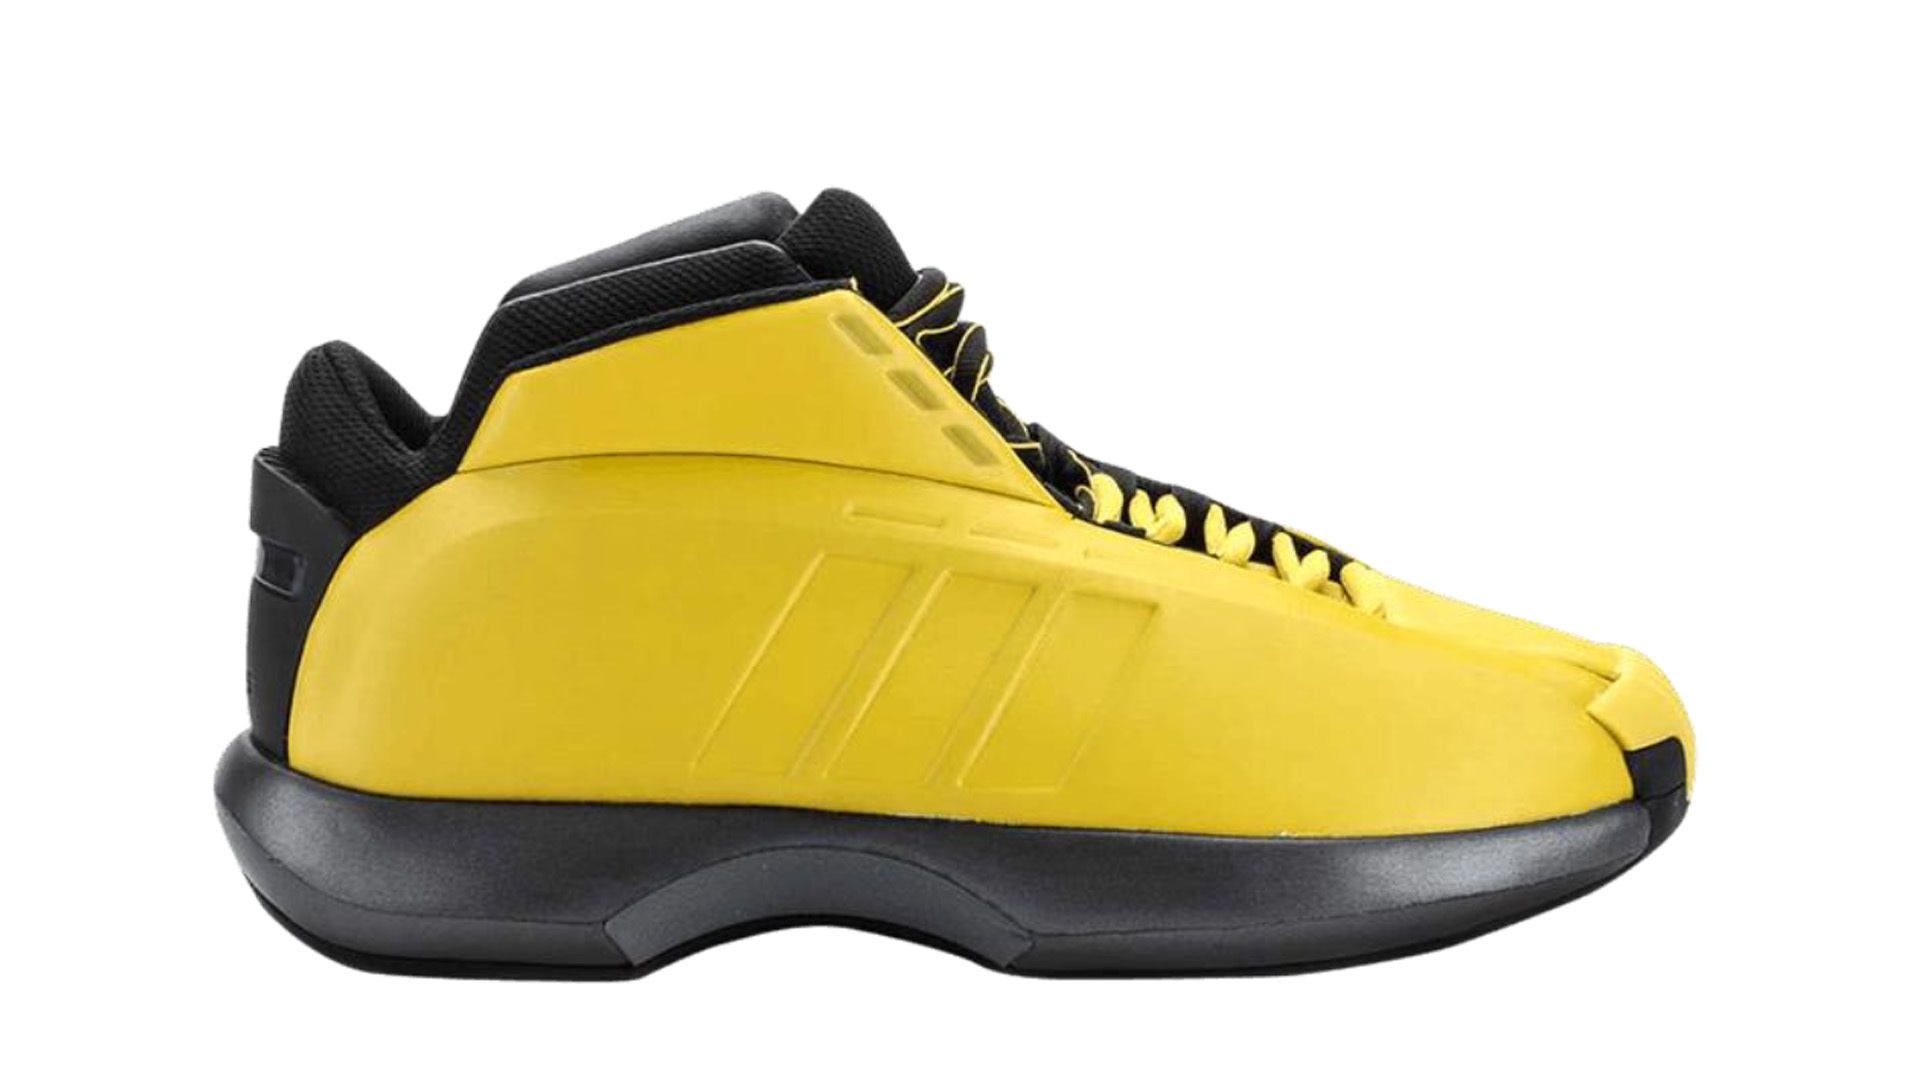 Adidas Set to Re-Release Kobe Bryant Signature Shoes in 2022